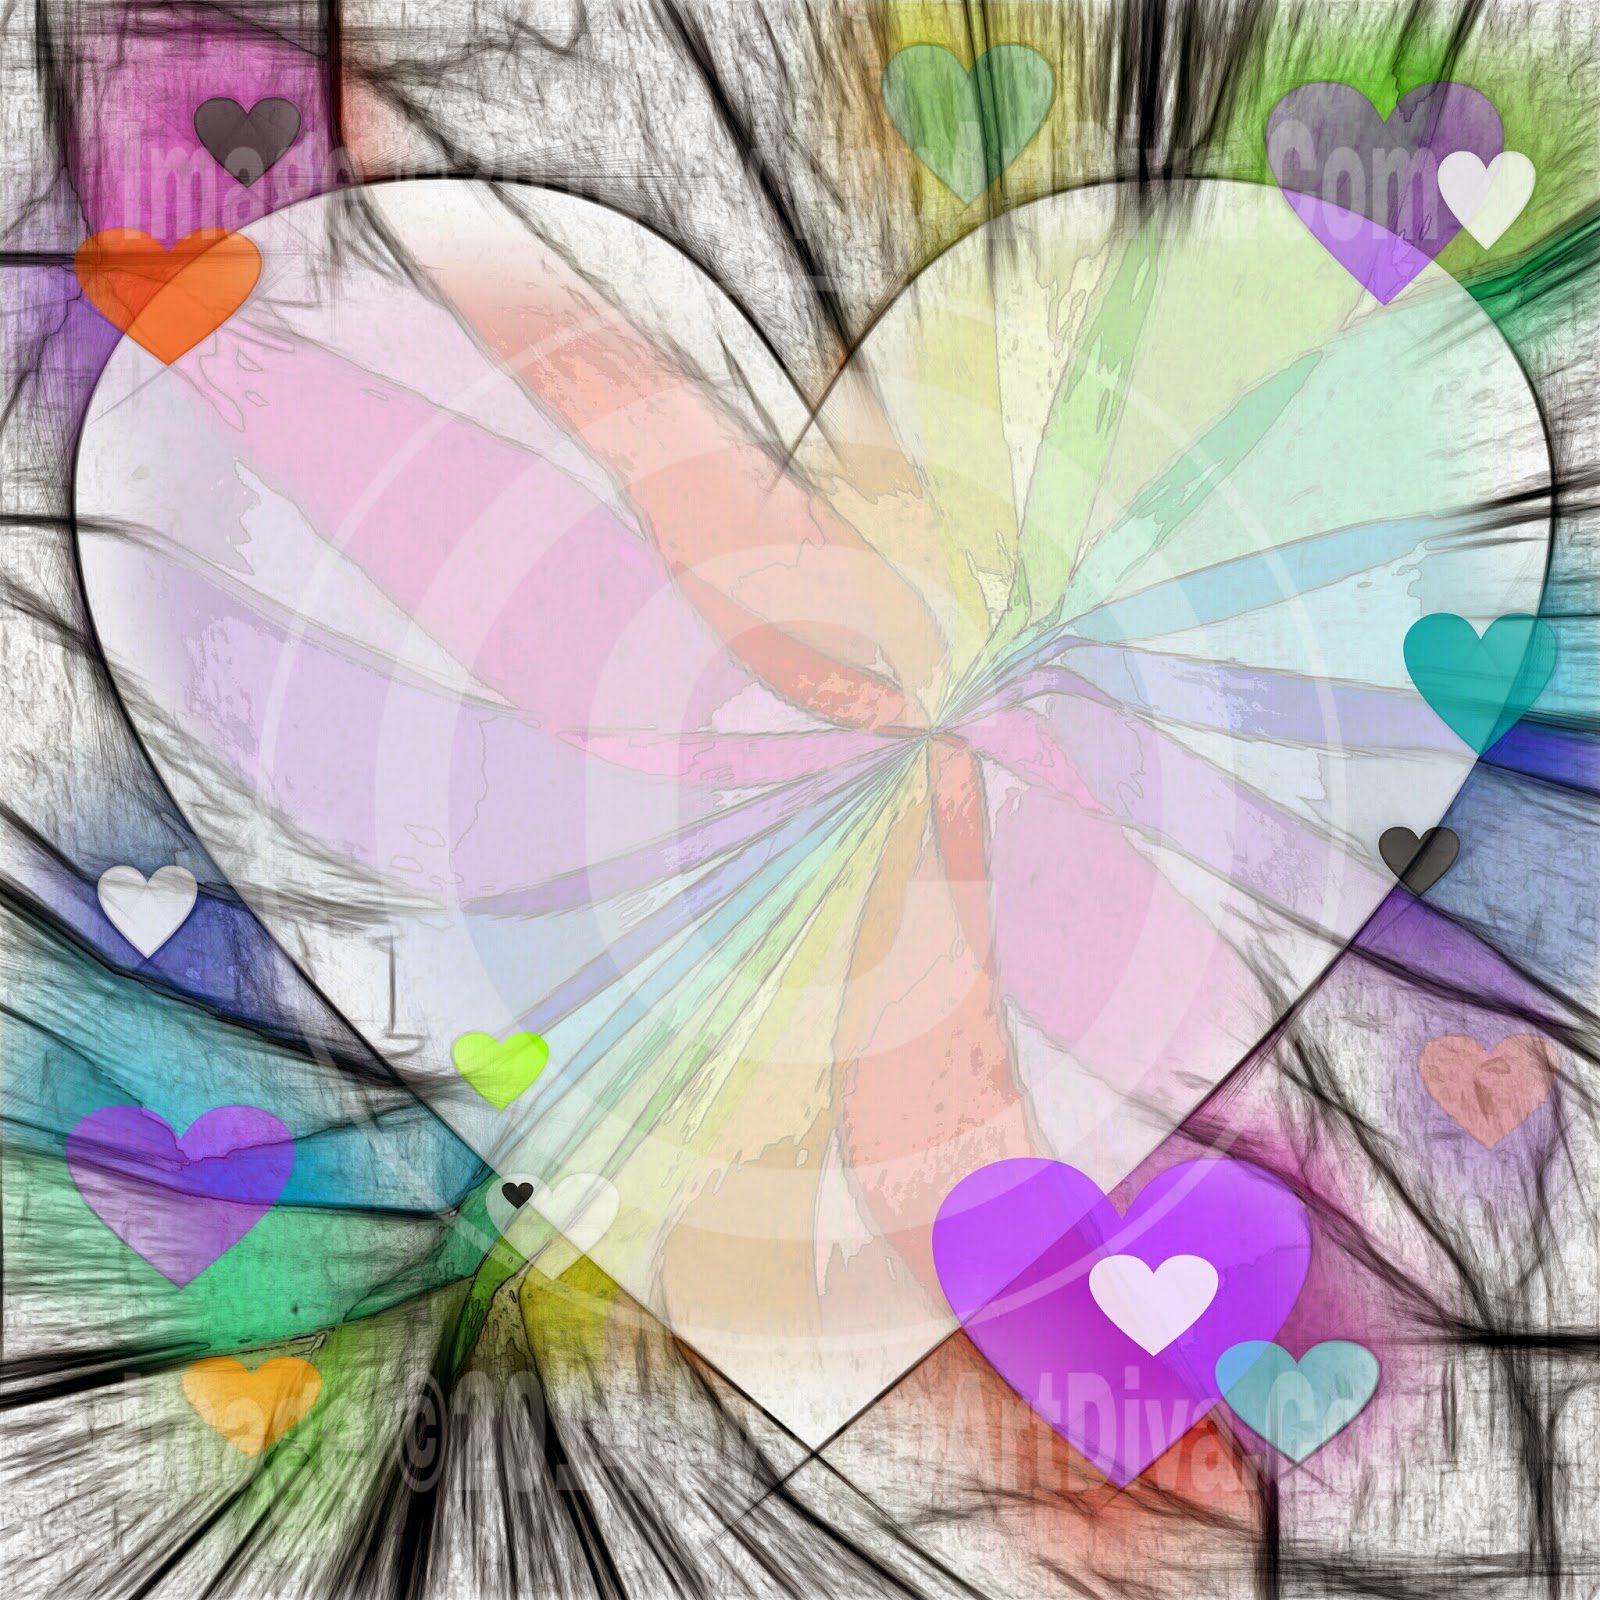 http://store.payloadz.com/details/2084286-photos-and-images-clip-art-kaleidoscope-heart-frame-border-web-graphic.html